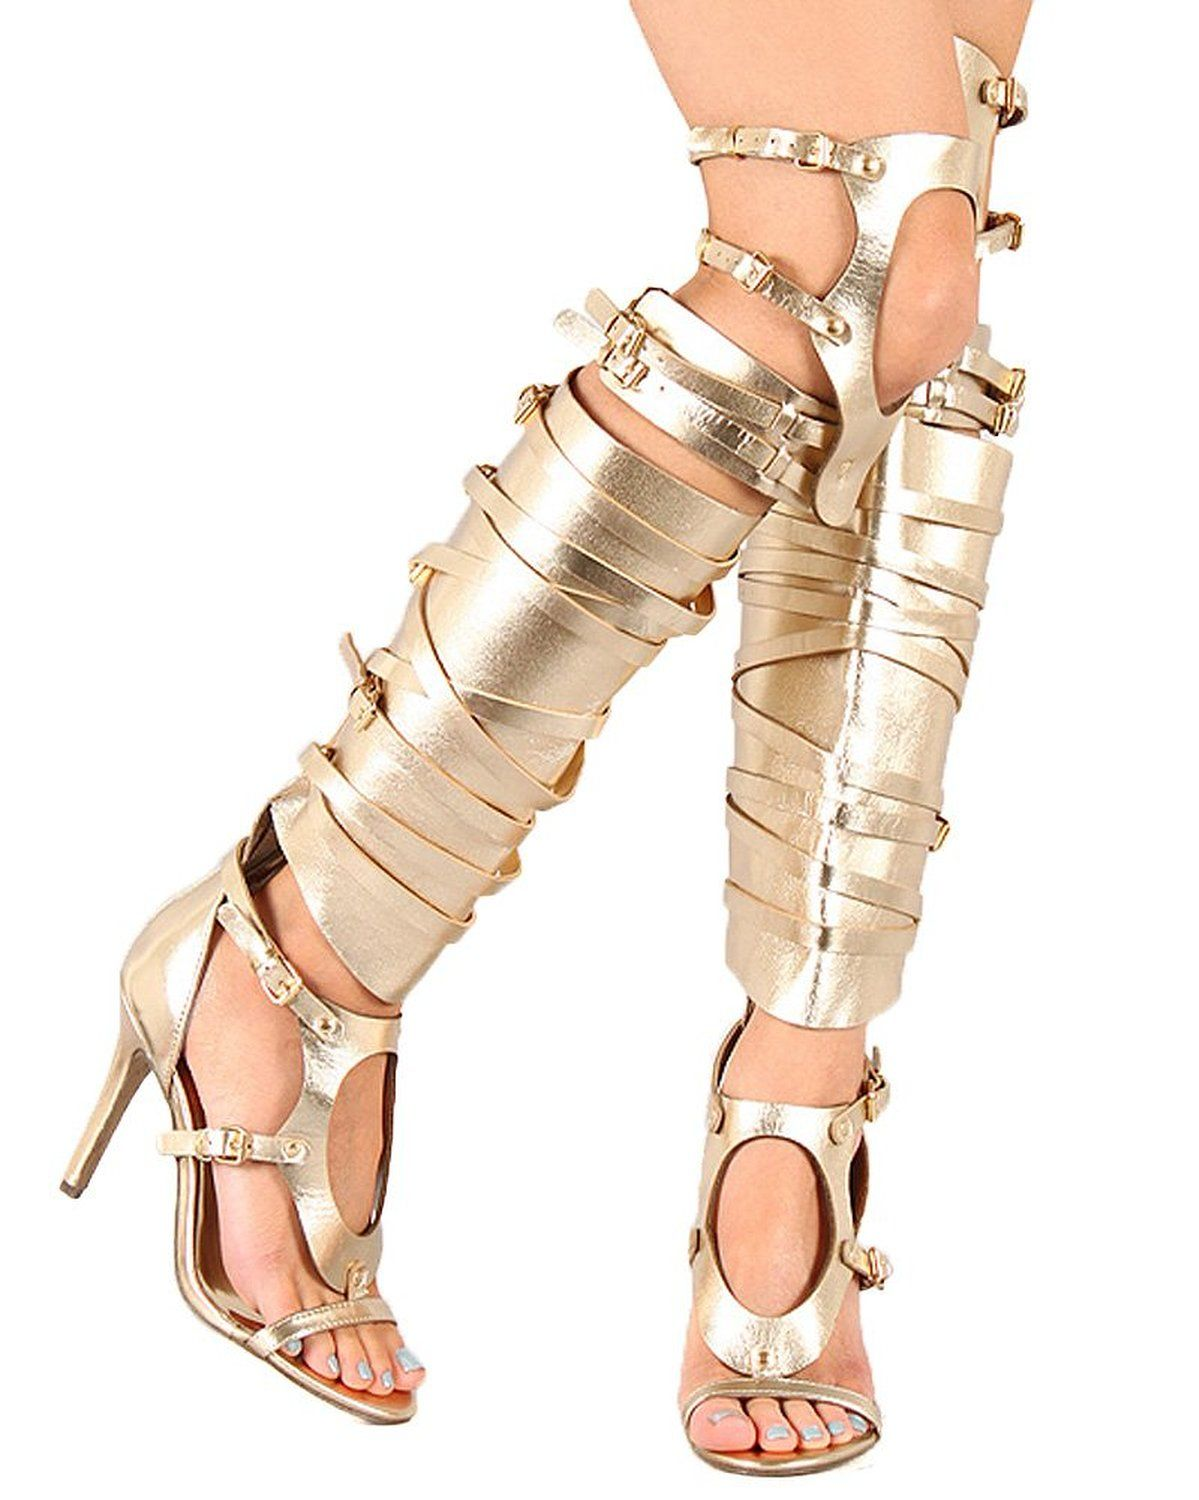 Strappy Lace Up Knee High Gladiator Heel   Knee high